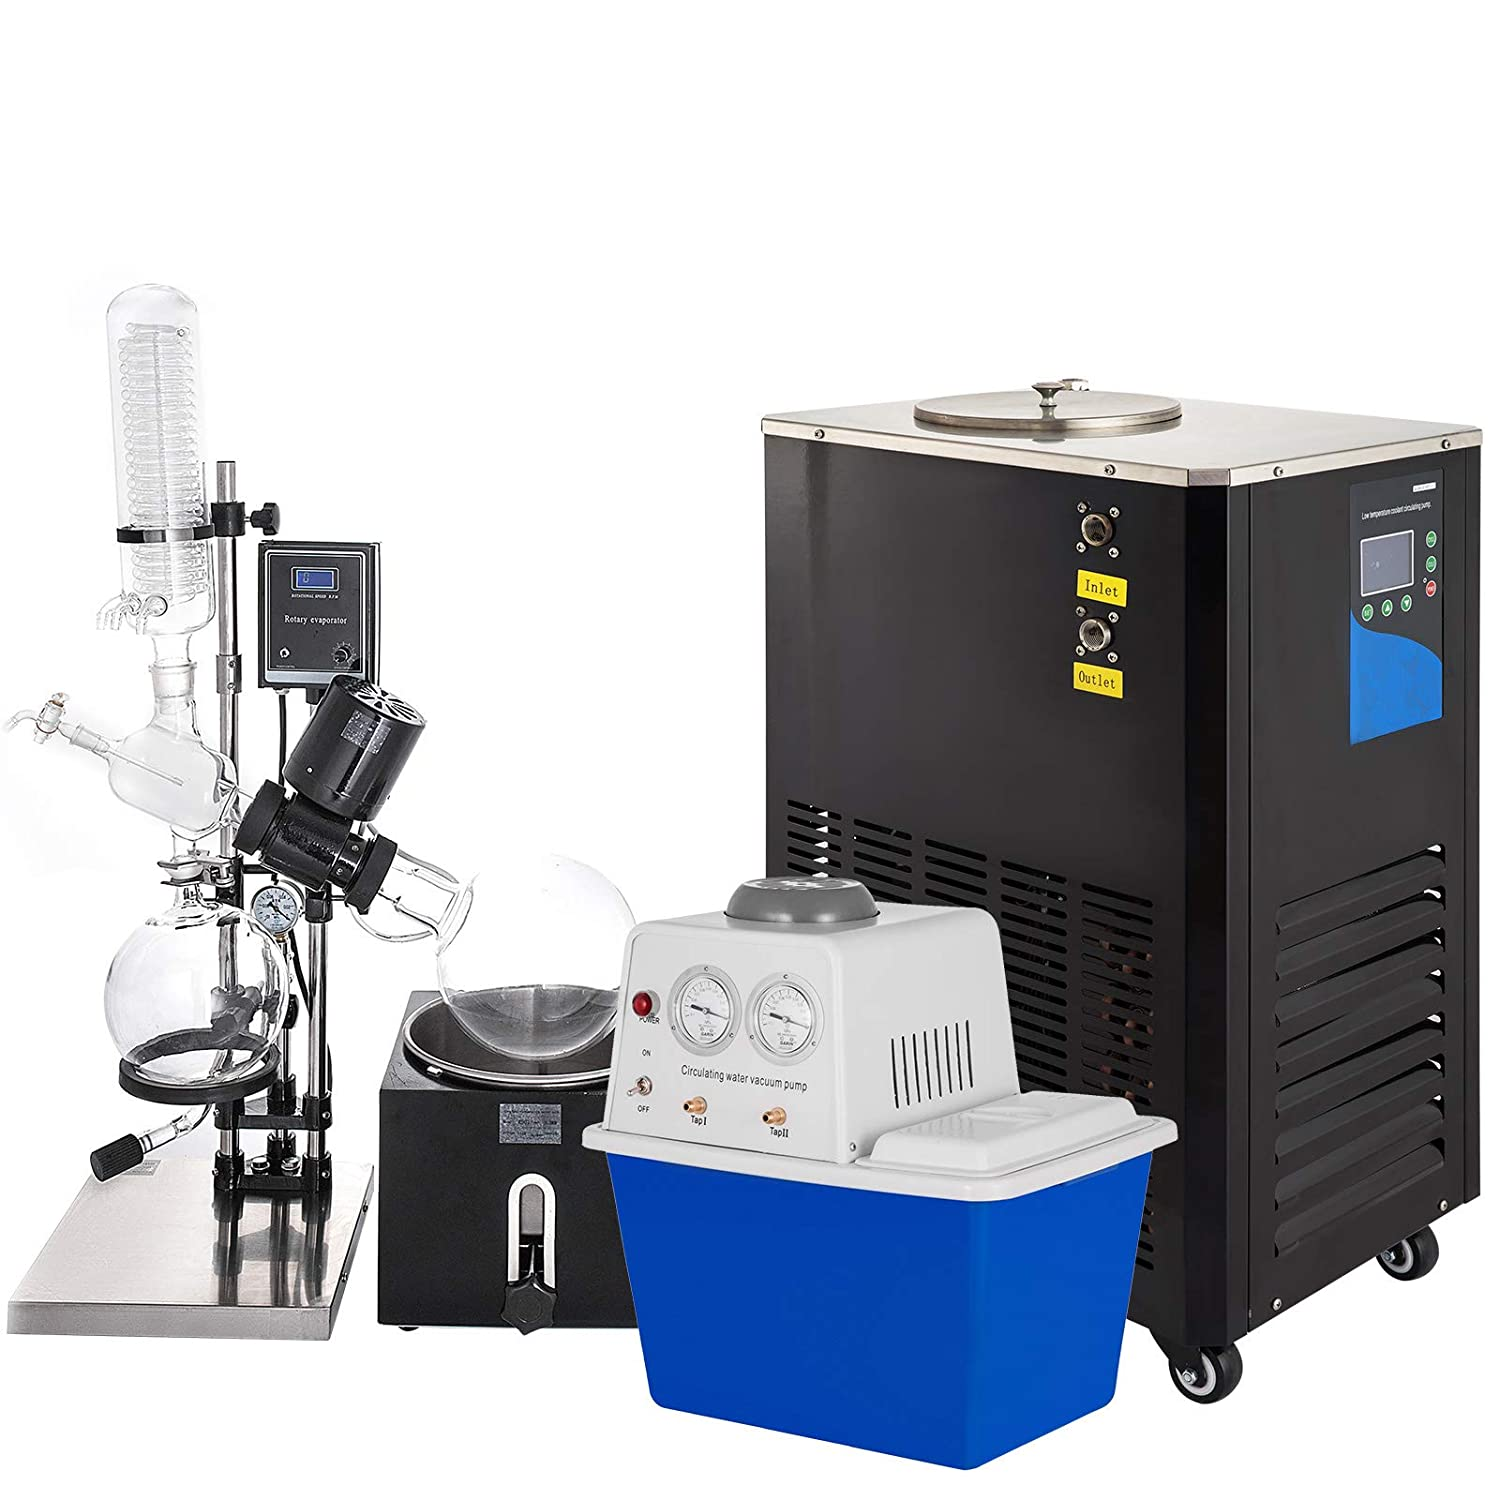 VEVOR 5L Rotary Evaporator 0-90rpm,Rotary Evaporator kit with Vacuum Pump and Chiller,with Manual Lift 0-180°C 0.098mpa,for The Chemical Industry(Black)